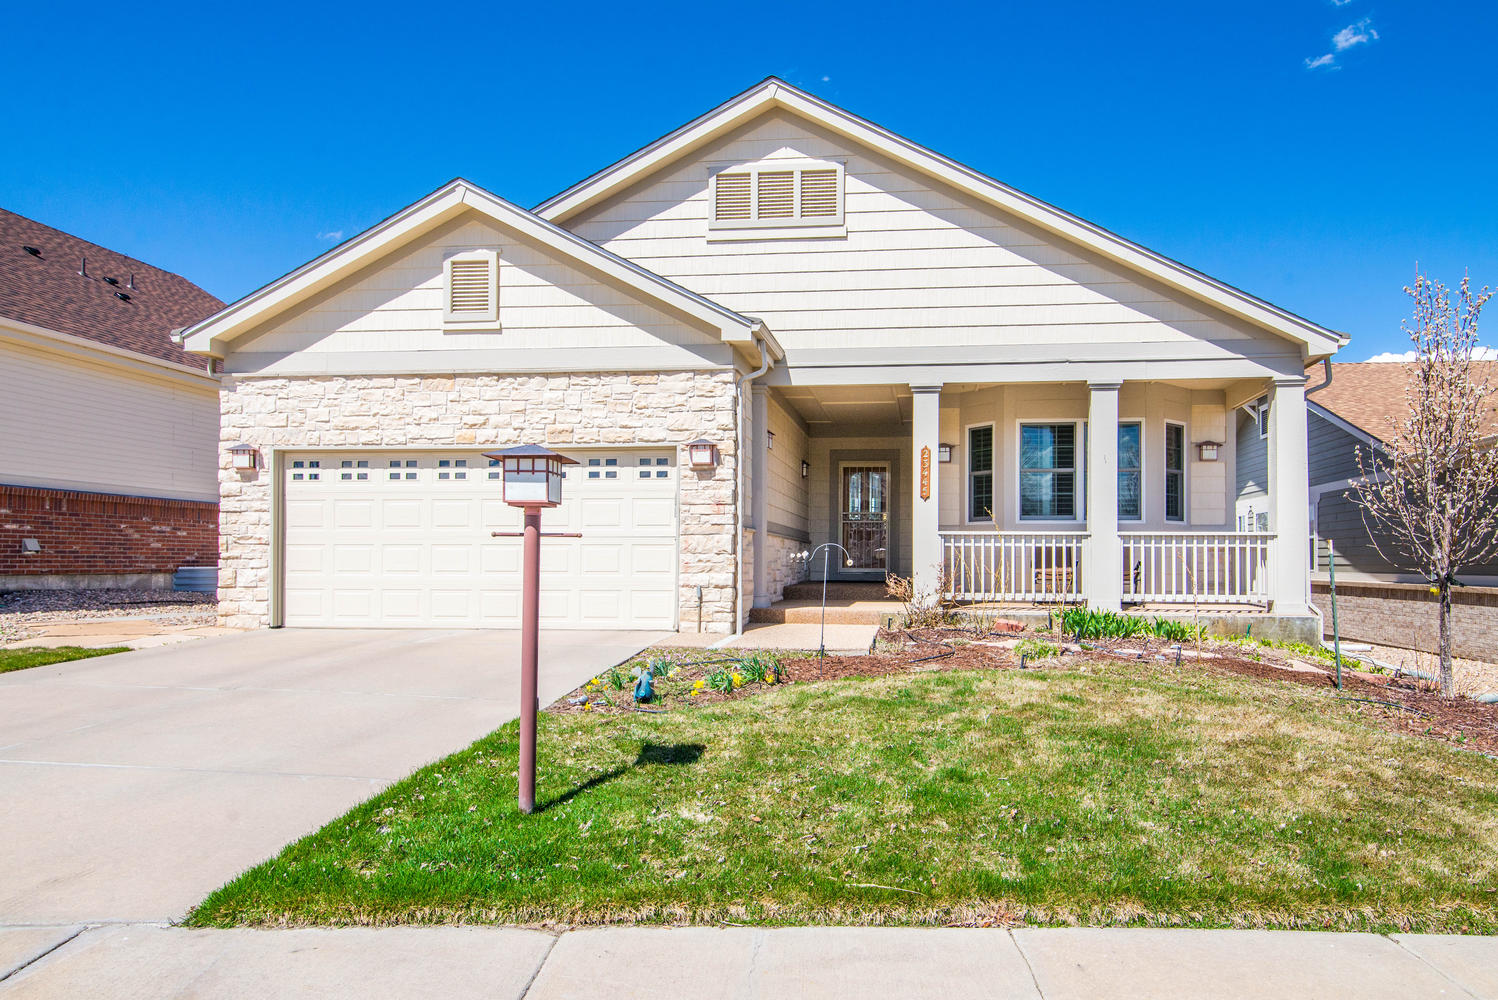 Single Family Home for Sale at Perfectly updated home on Fairway #9 23445 E Otero Drive Heritage Eagle Bend, Aurora, Colorado, 80016 United States